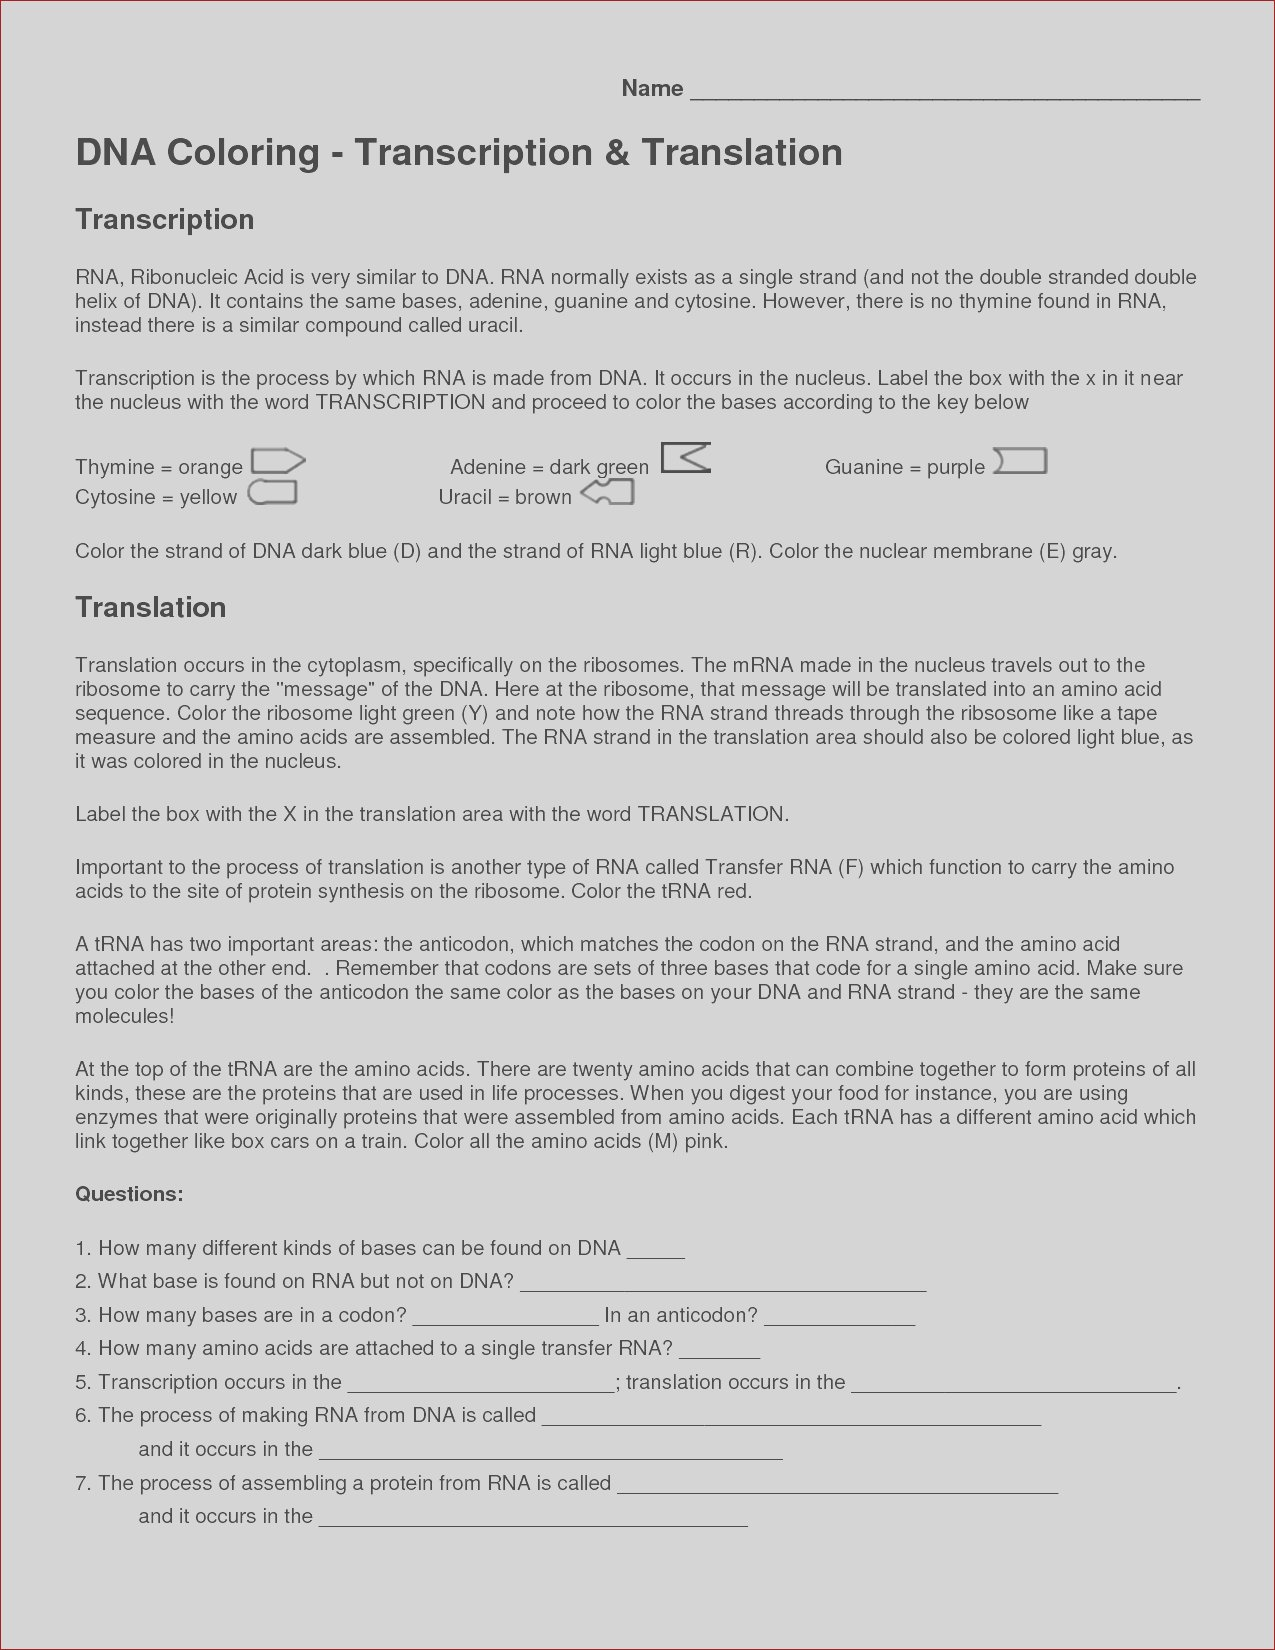 dna transcription and translation coloring worksheet answers